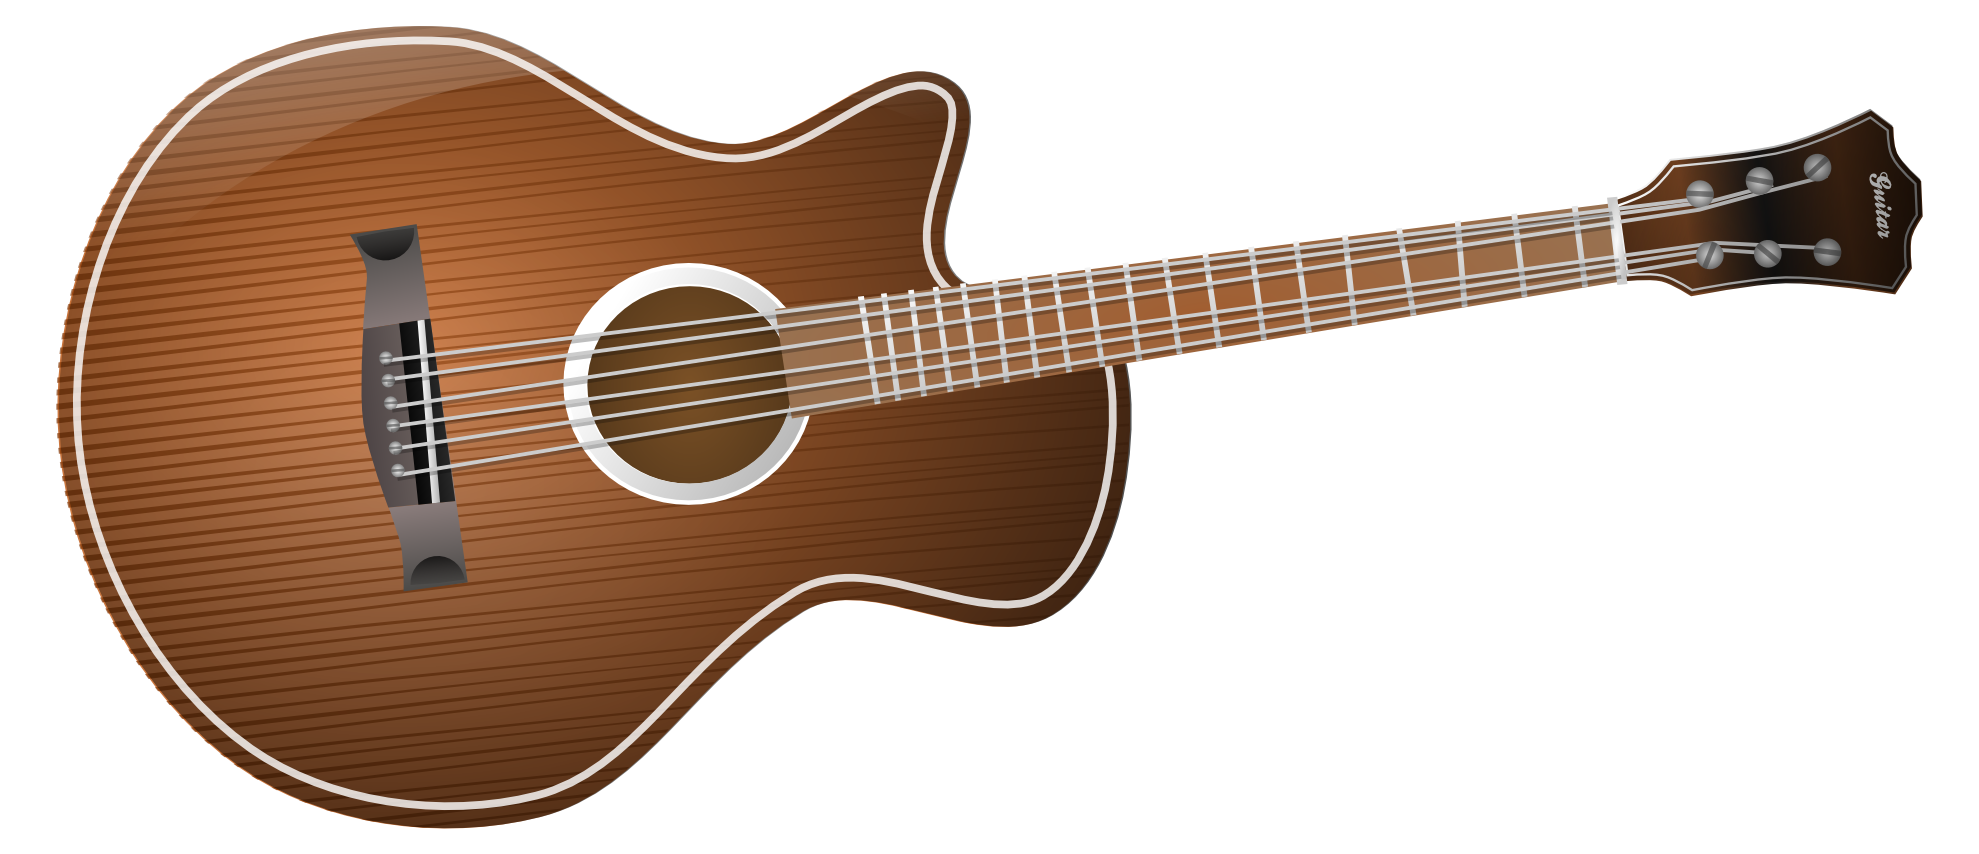 Png images free picture. Clipart fire guitar